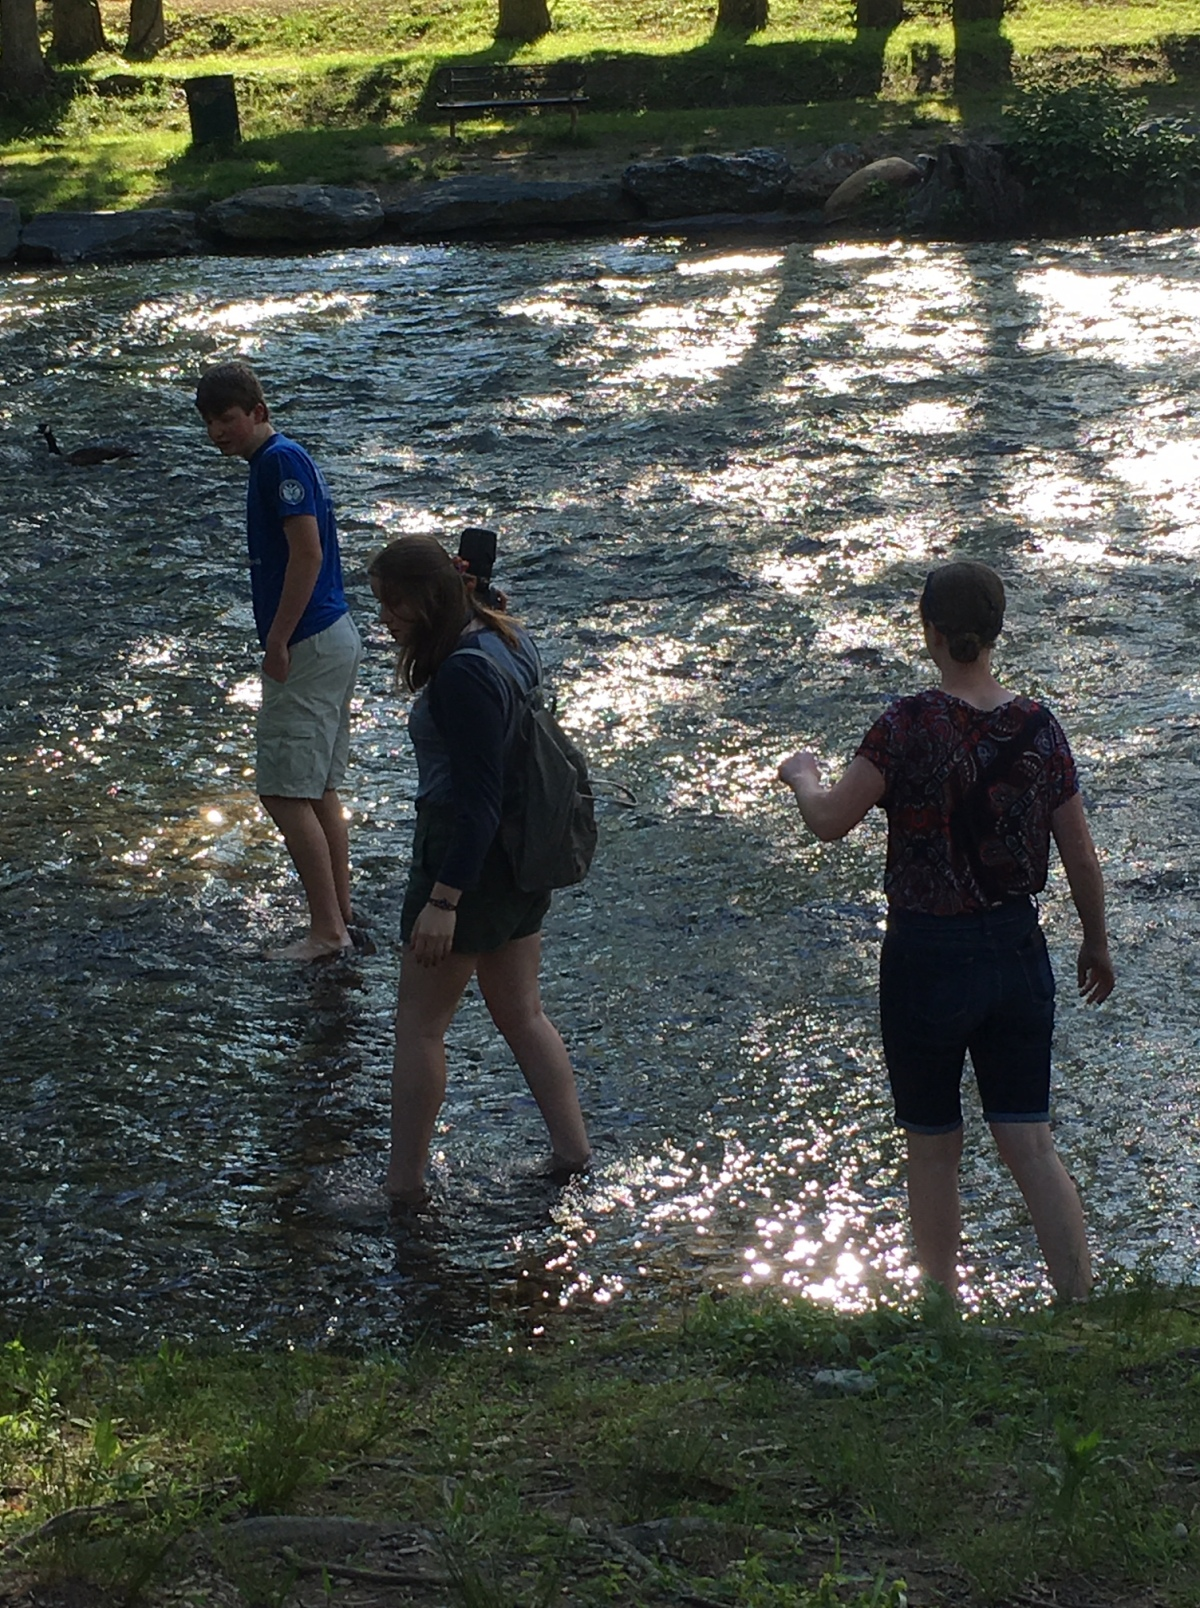 Three kids in wading in the river